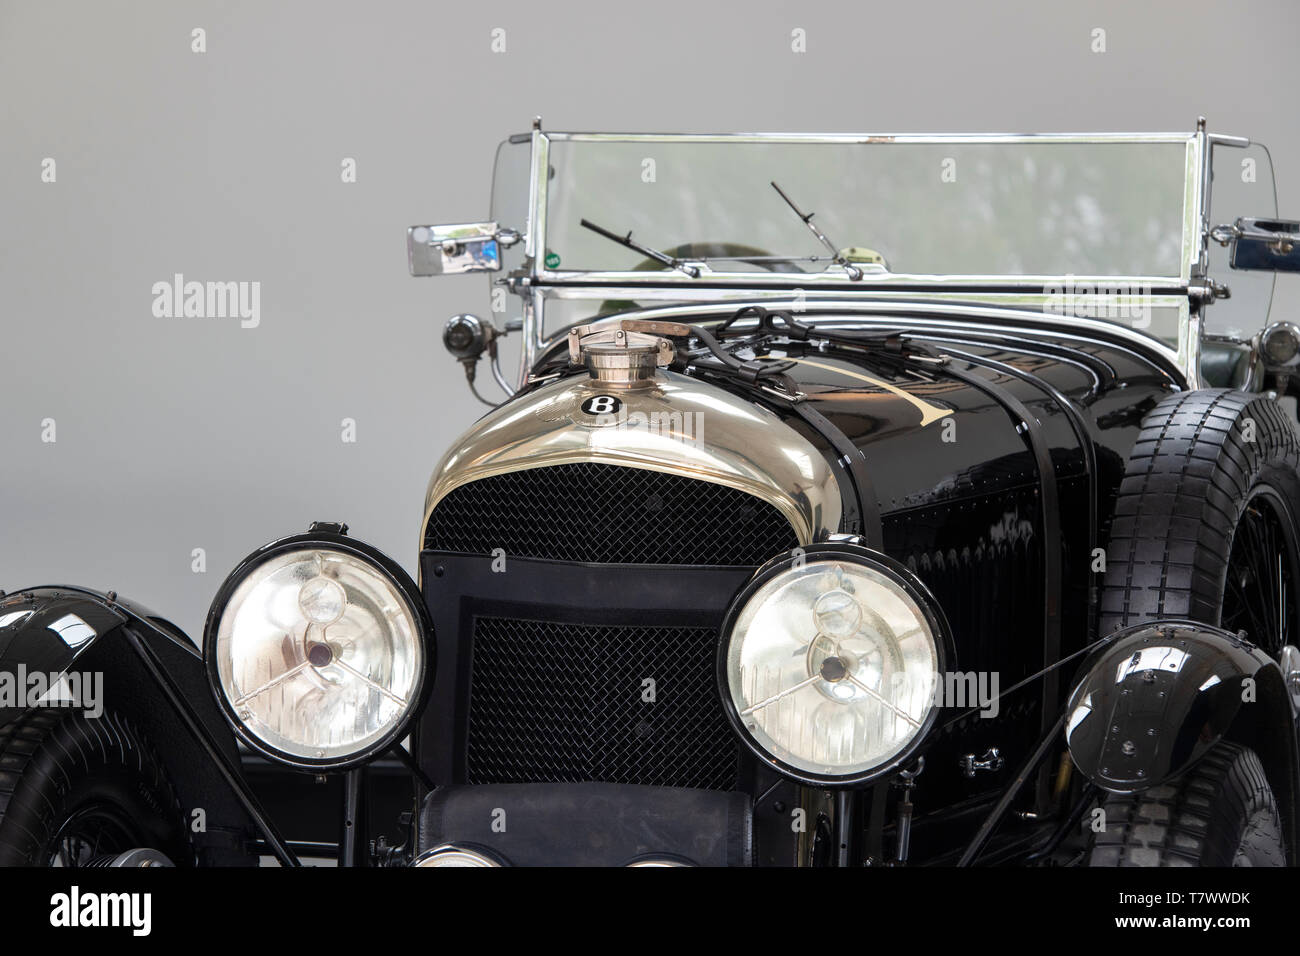 Vintage Bentley car in a showroom at Bicester Heritage Centre 'Drive It Day'. Bicester, Oxfordshire, England - Stock Image